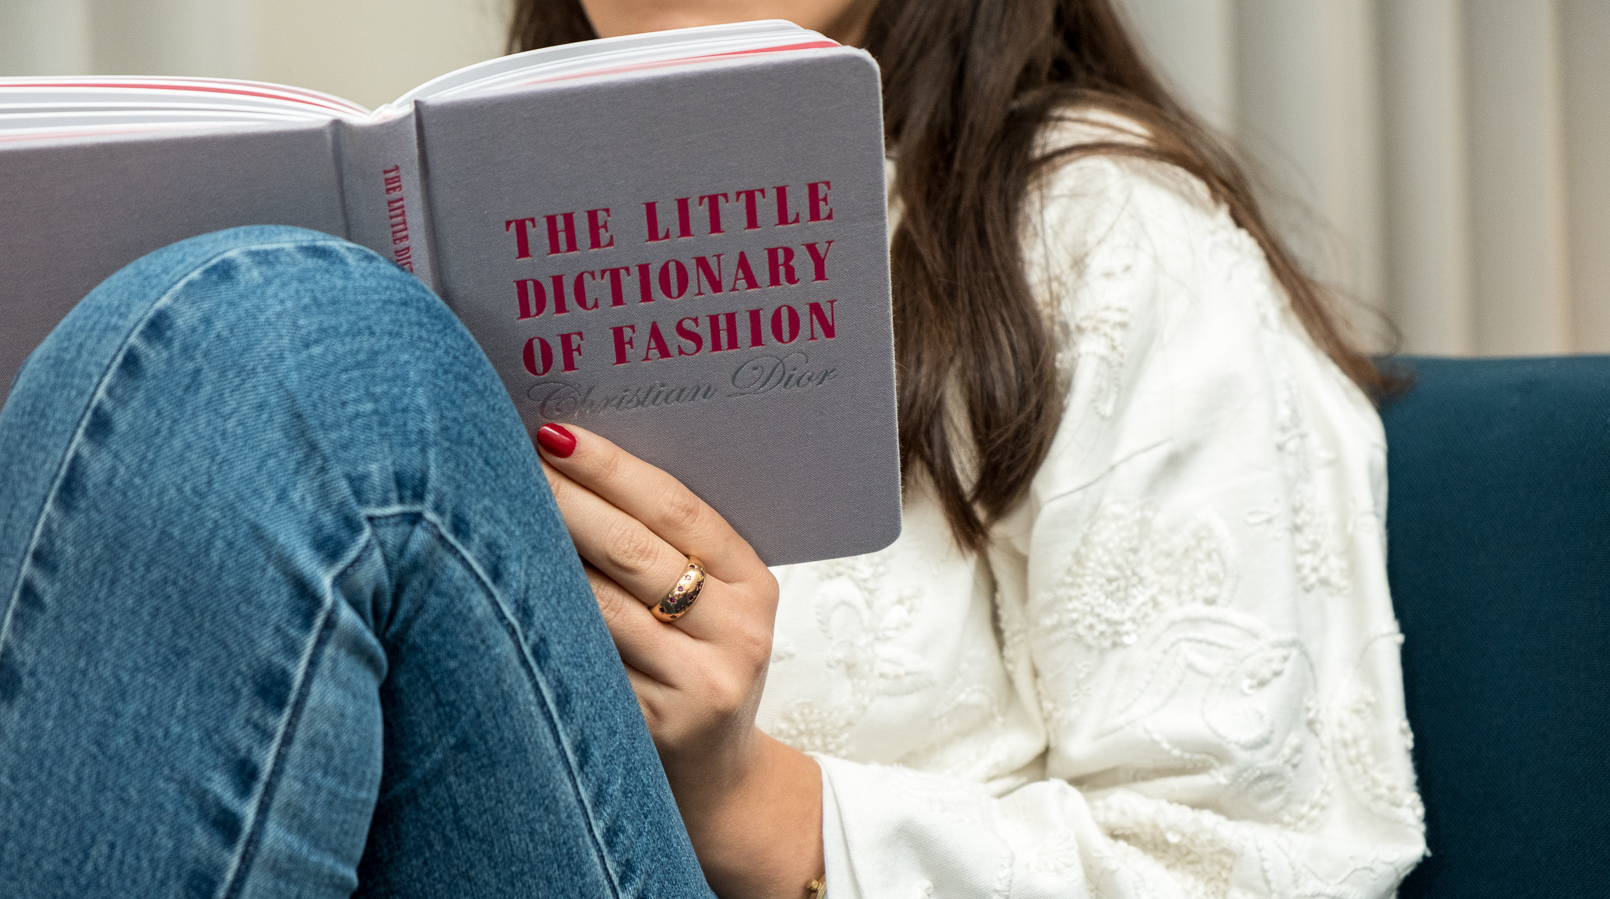 Le Fashionaire 4 fashion books you need now grey pink book little dictionary fashion christian dior white embroidered oversized mango jacket denim nakd jeans book 1261F EN